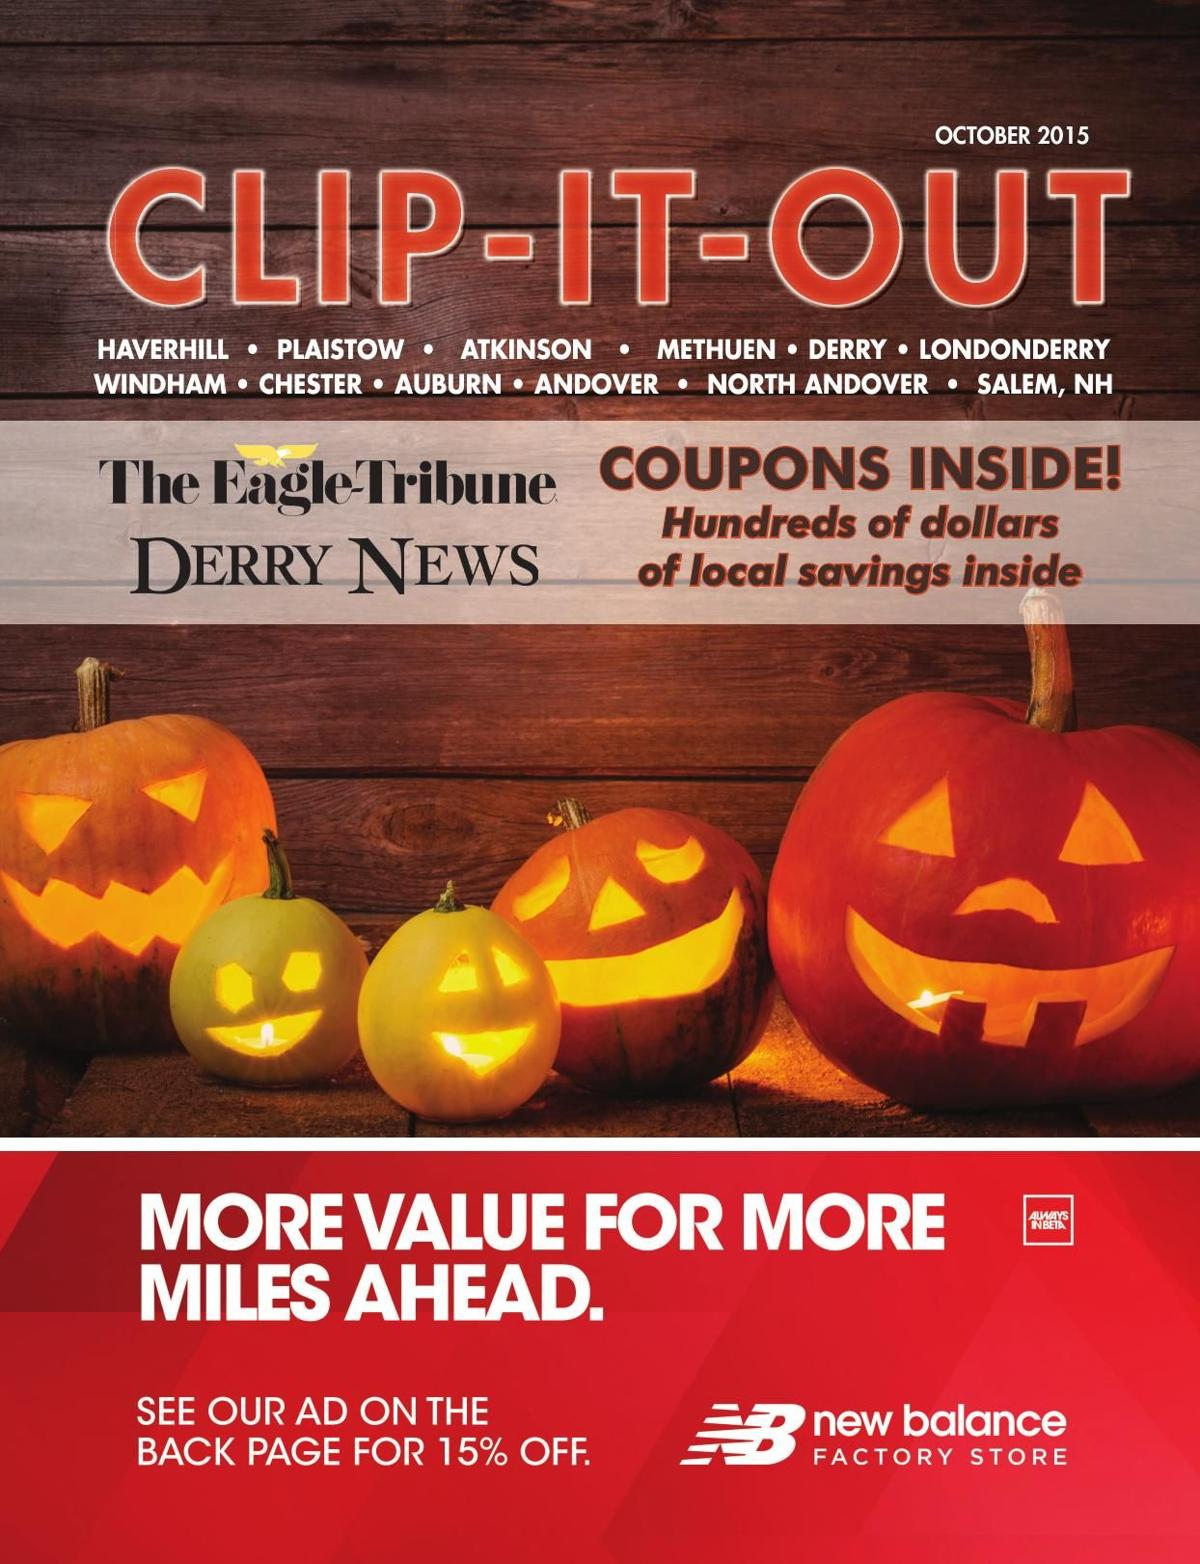 Clip-It-Out Coupon Book October 2015